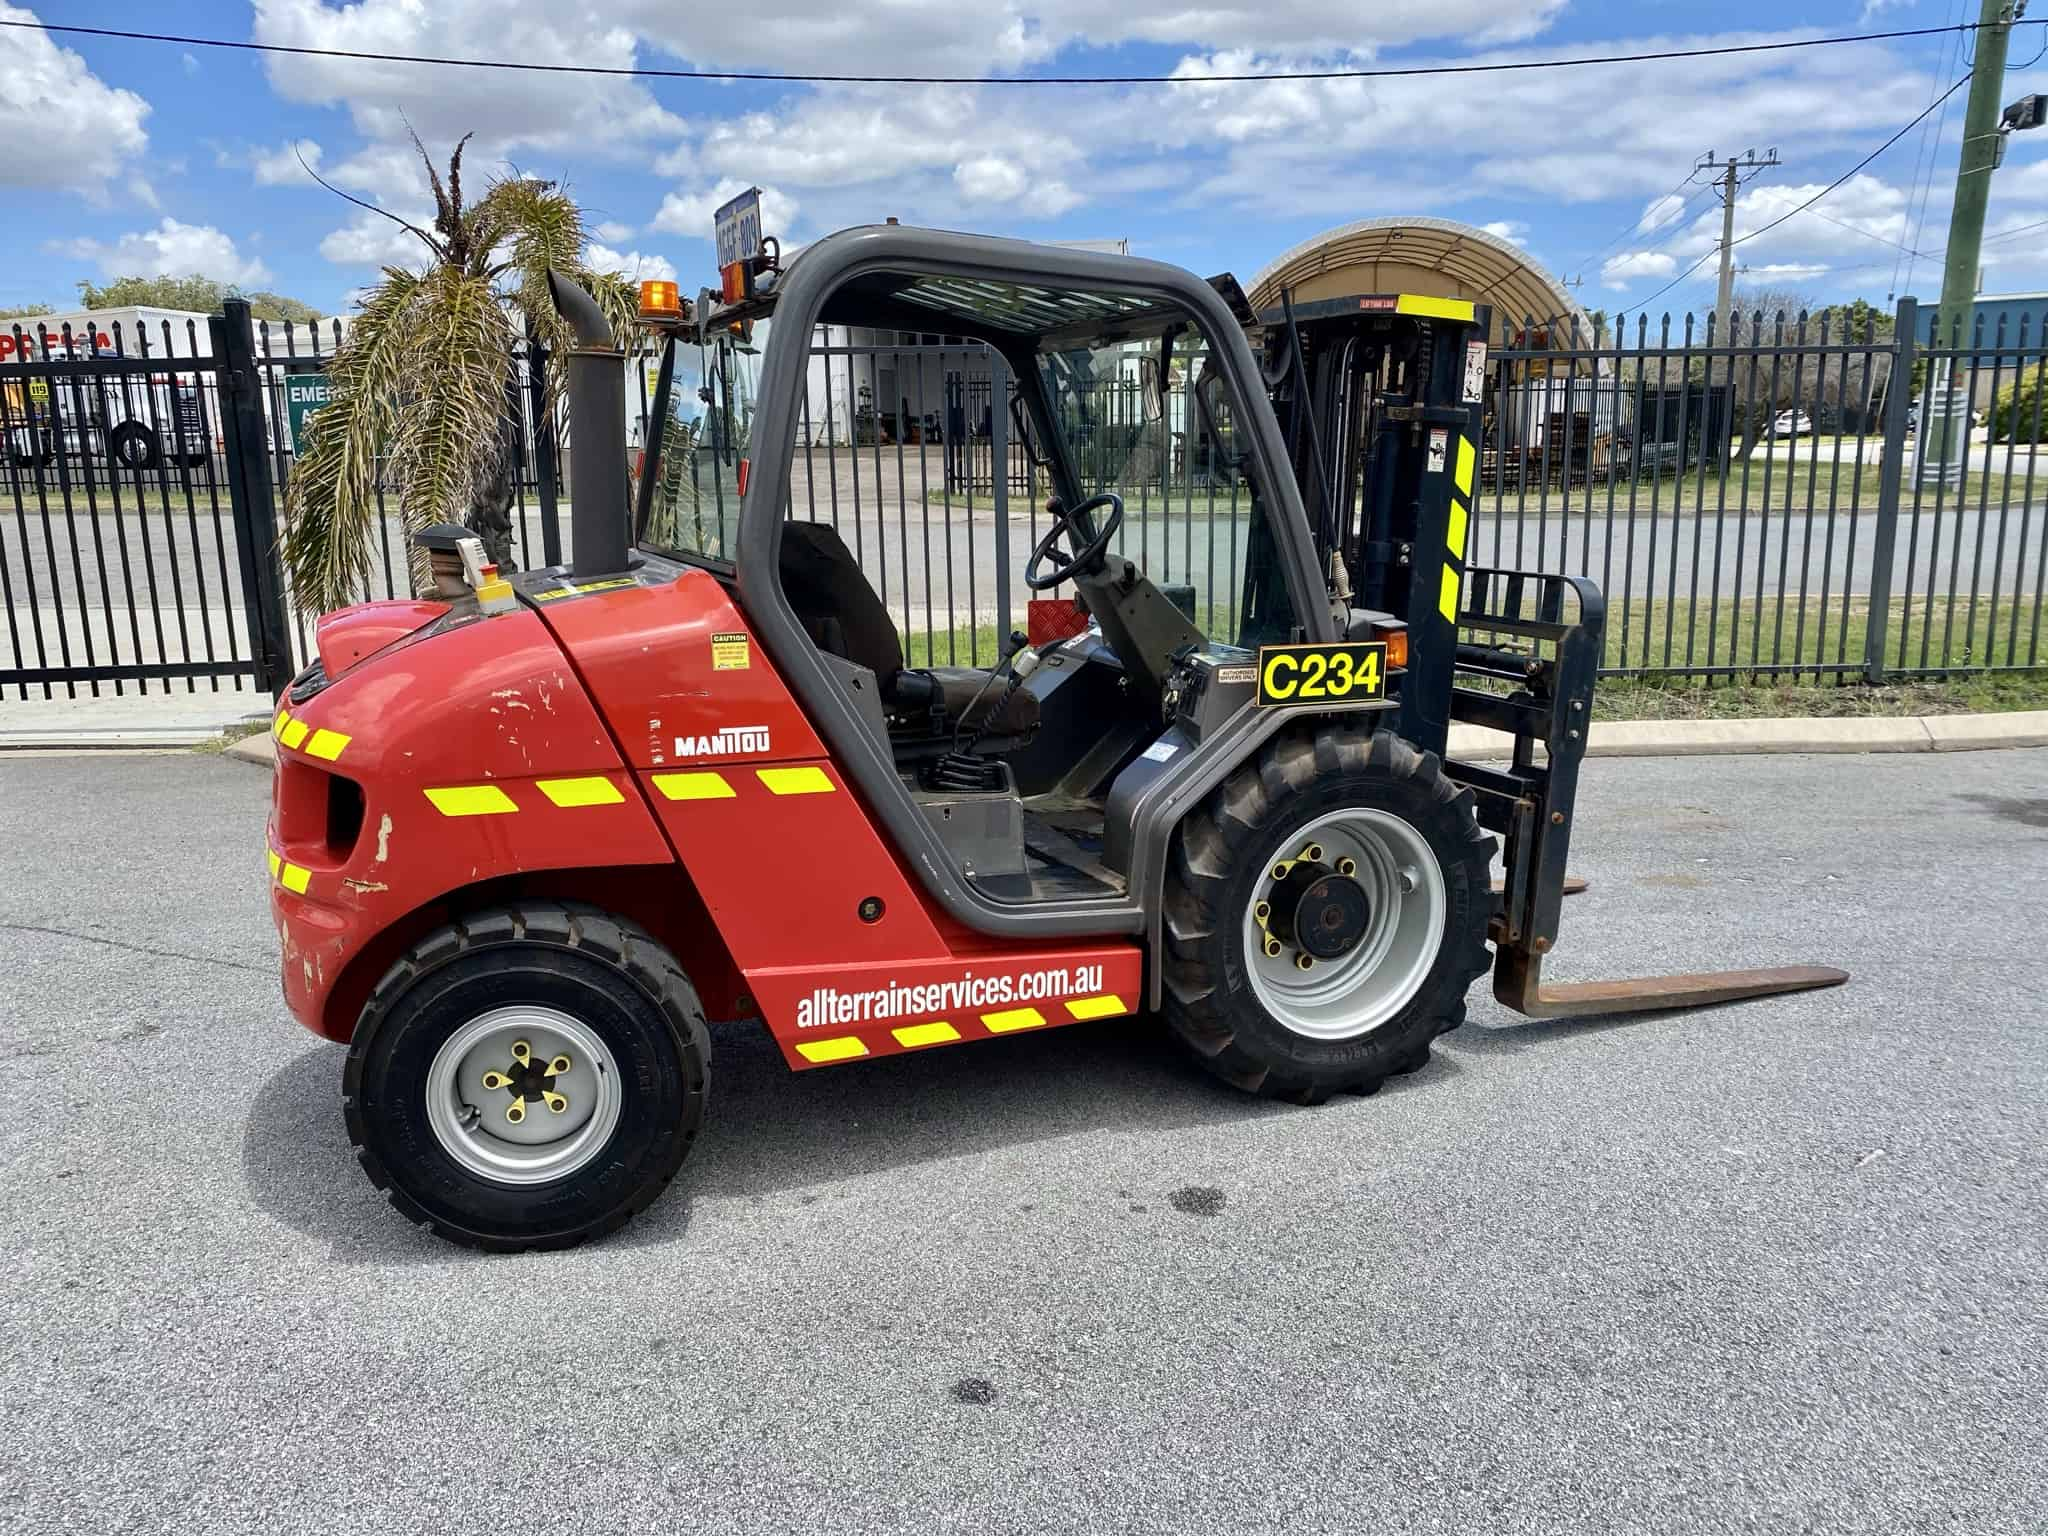 Manitou MH 25-4T Buggie rough terrain forklift spare parts in Perth